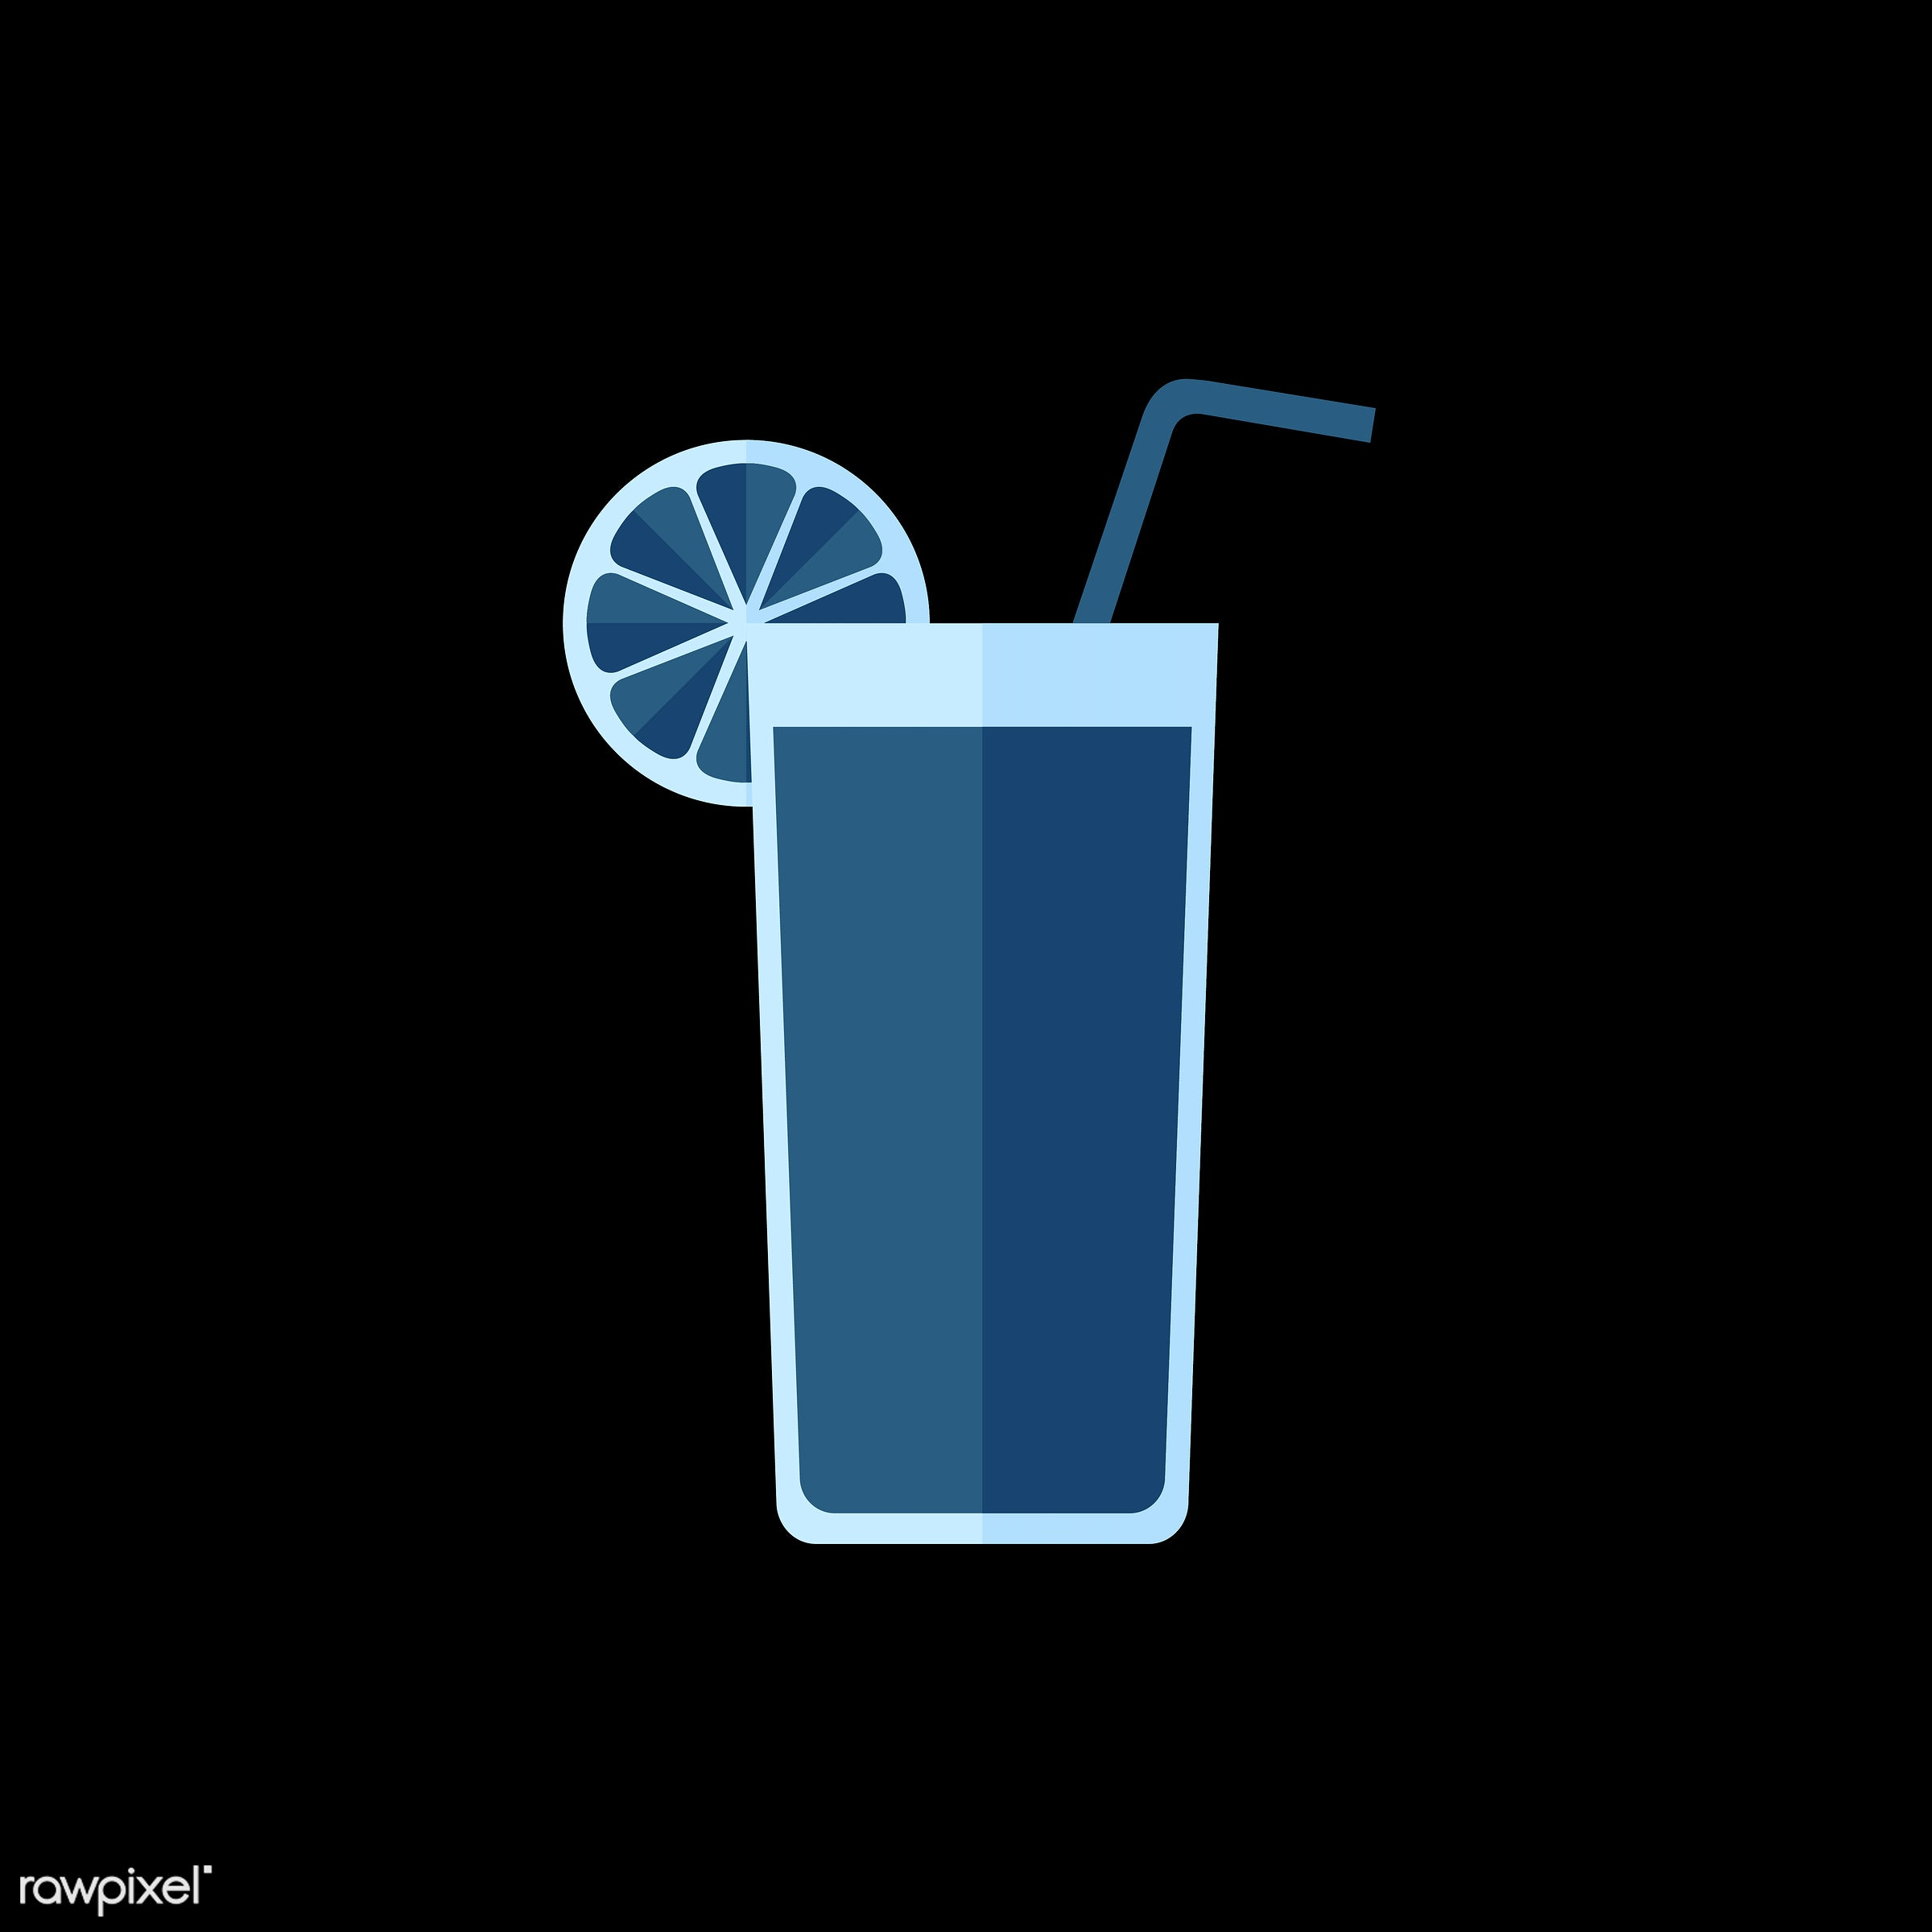 vector, graphic, illustration, icon, symbol, colorful, cute, drink, beverage, water, cocktail, mocktail, alcohol, party, blue